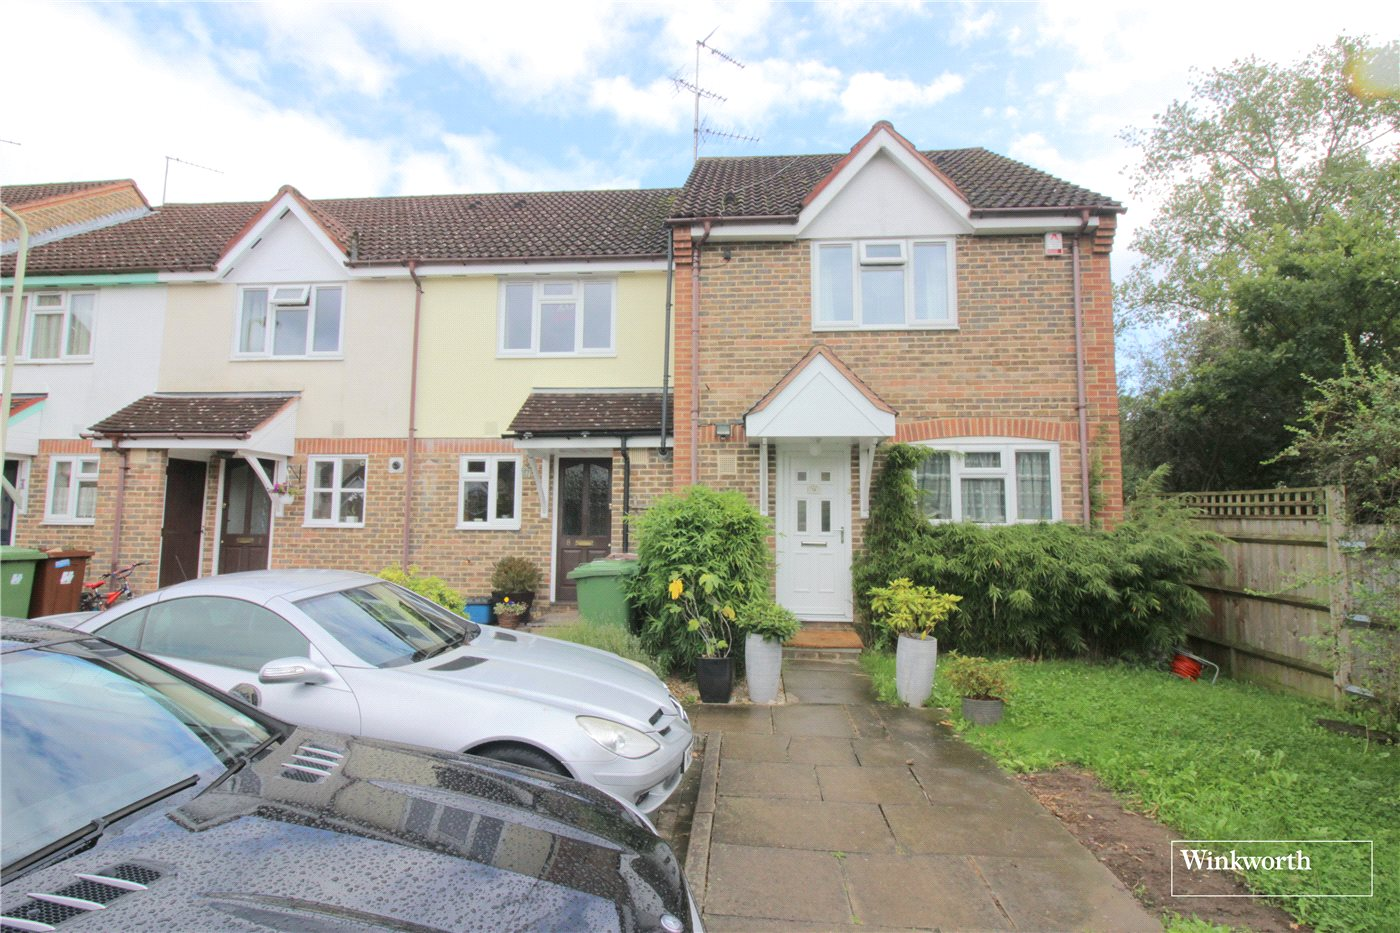 3 Bedrooms House for sale in Oberon Close, Borehamwood, Hertfordshire, WD6